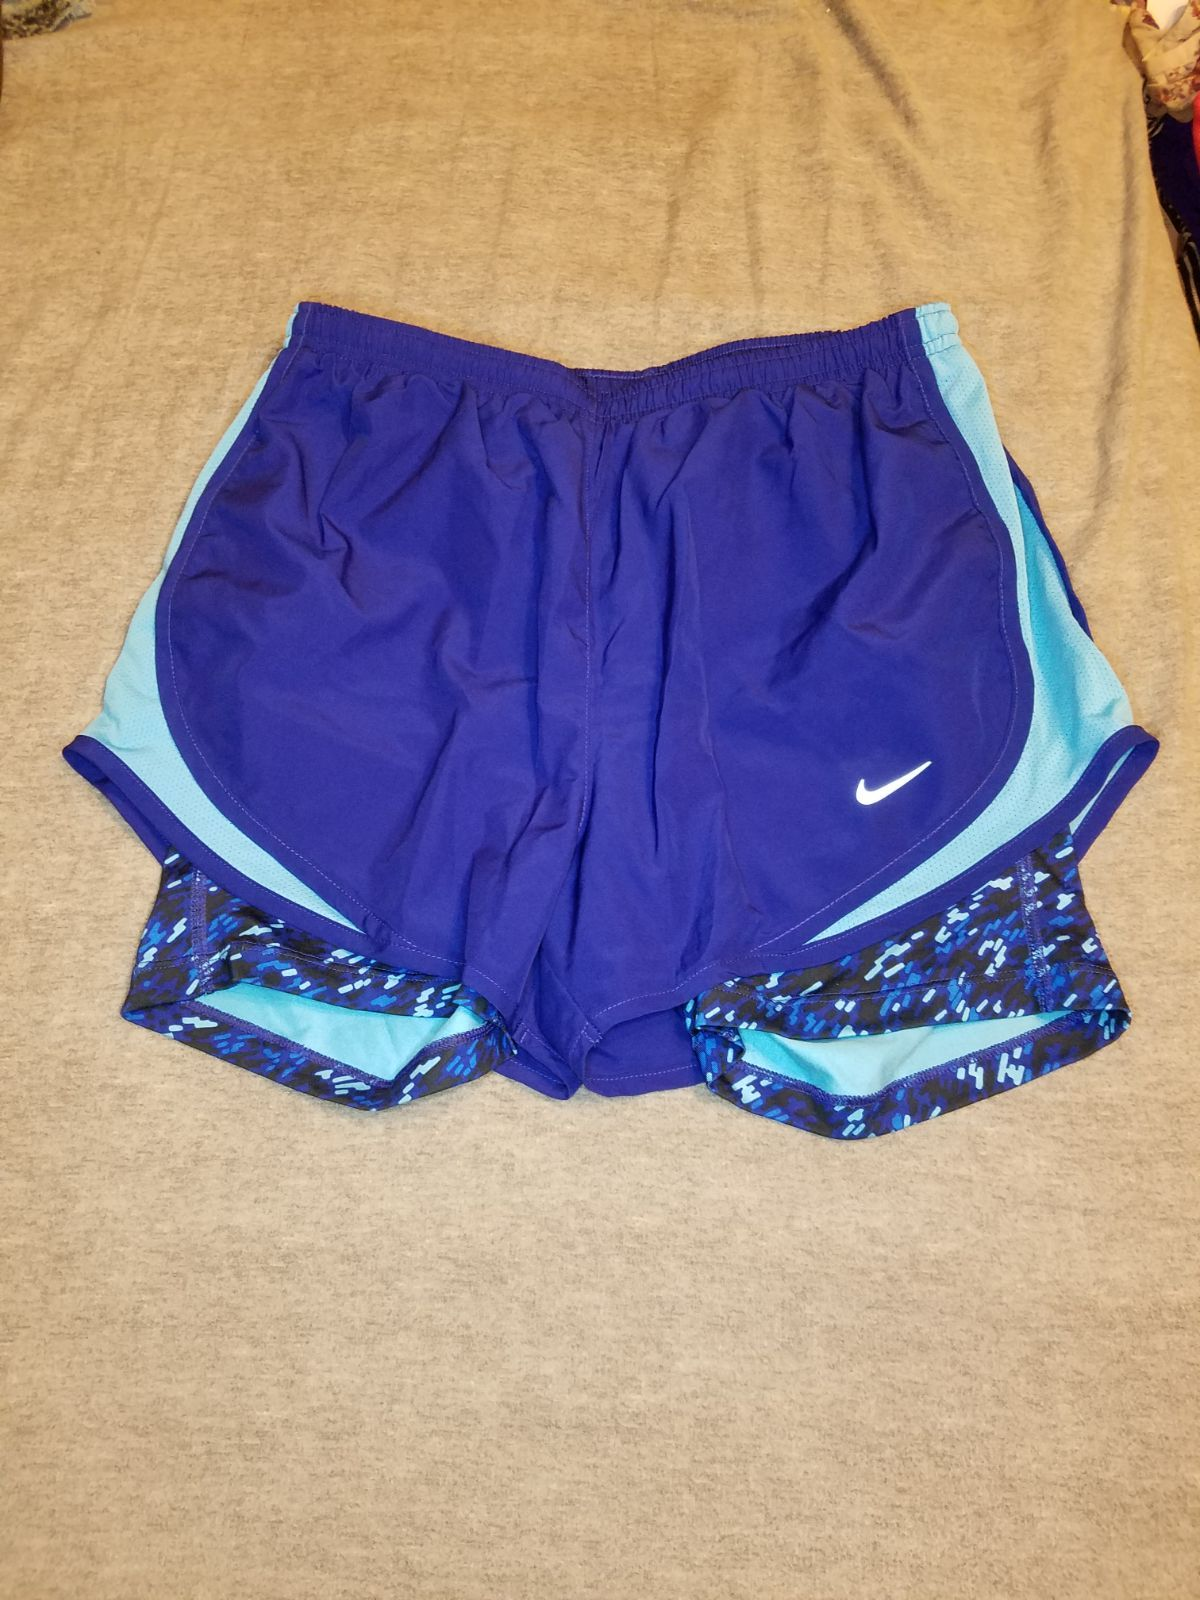 Blue nike dri fit tempo running shorts with light blue